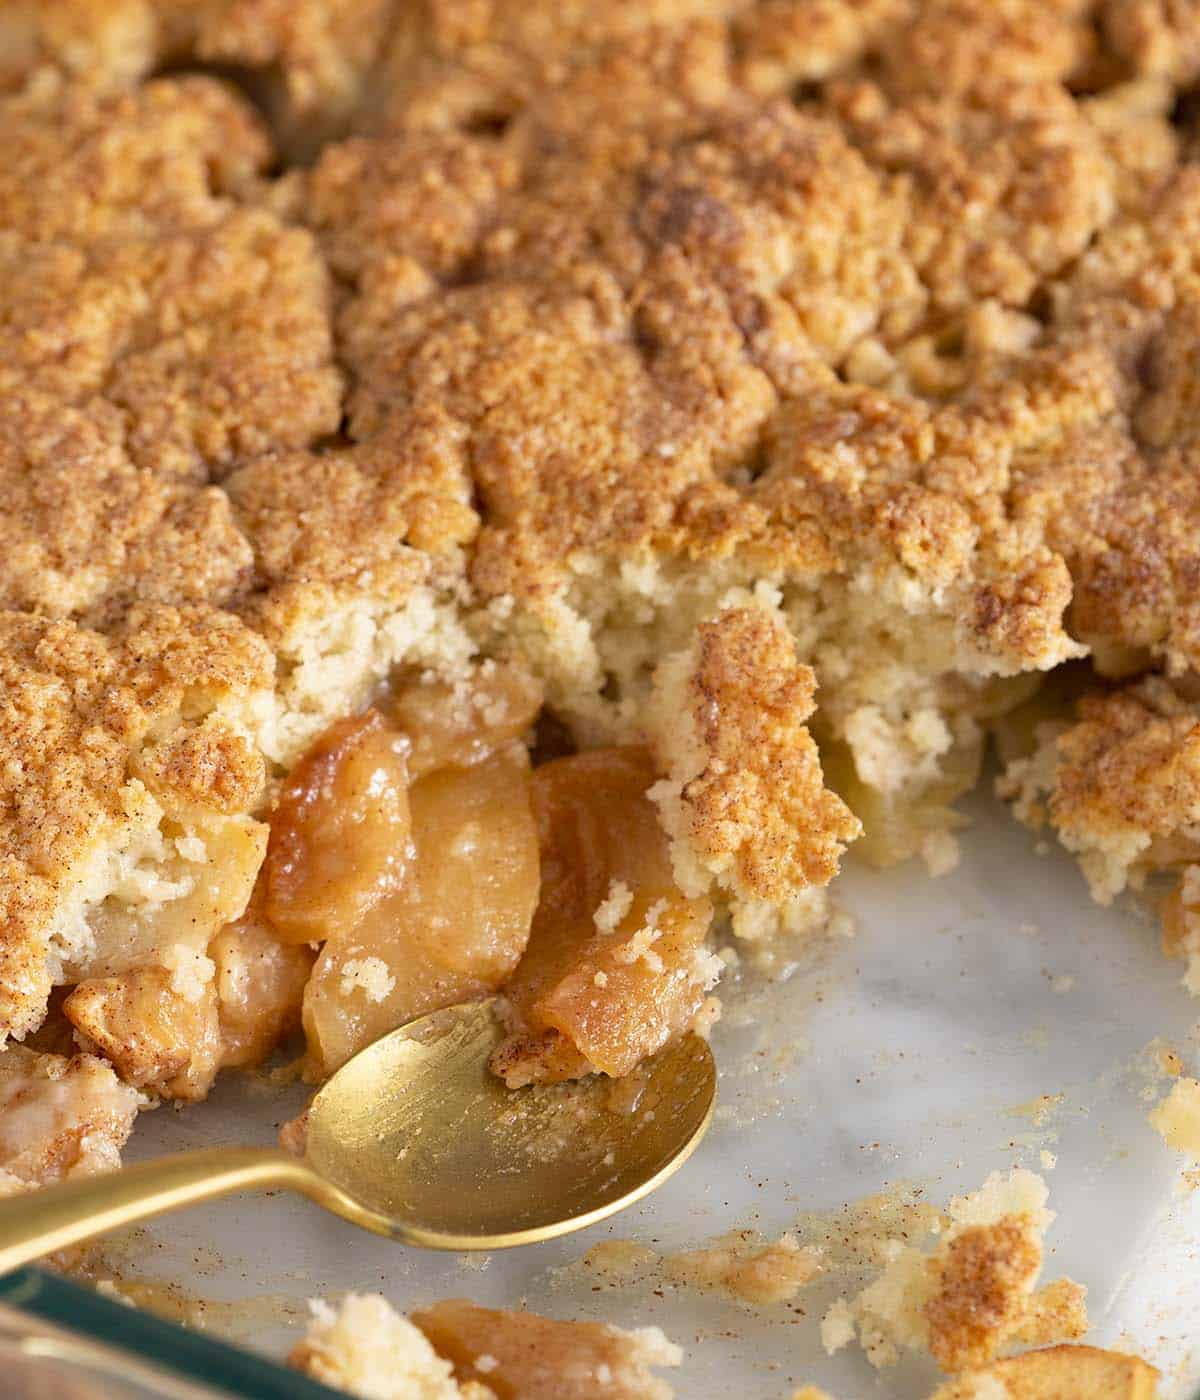 A glass dish of apple cobbler with a golden spoon.